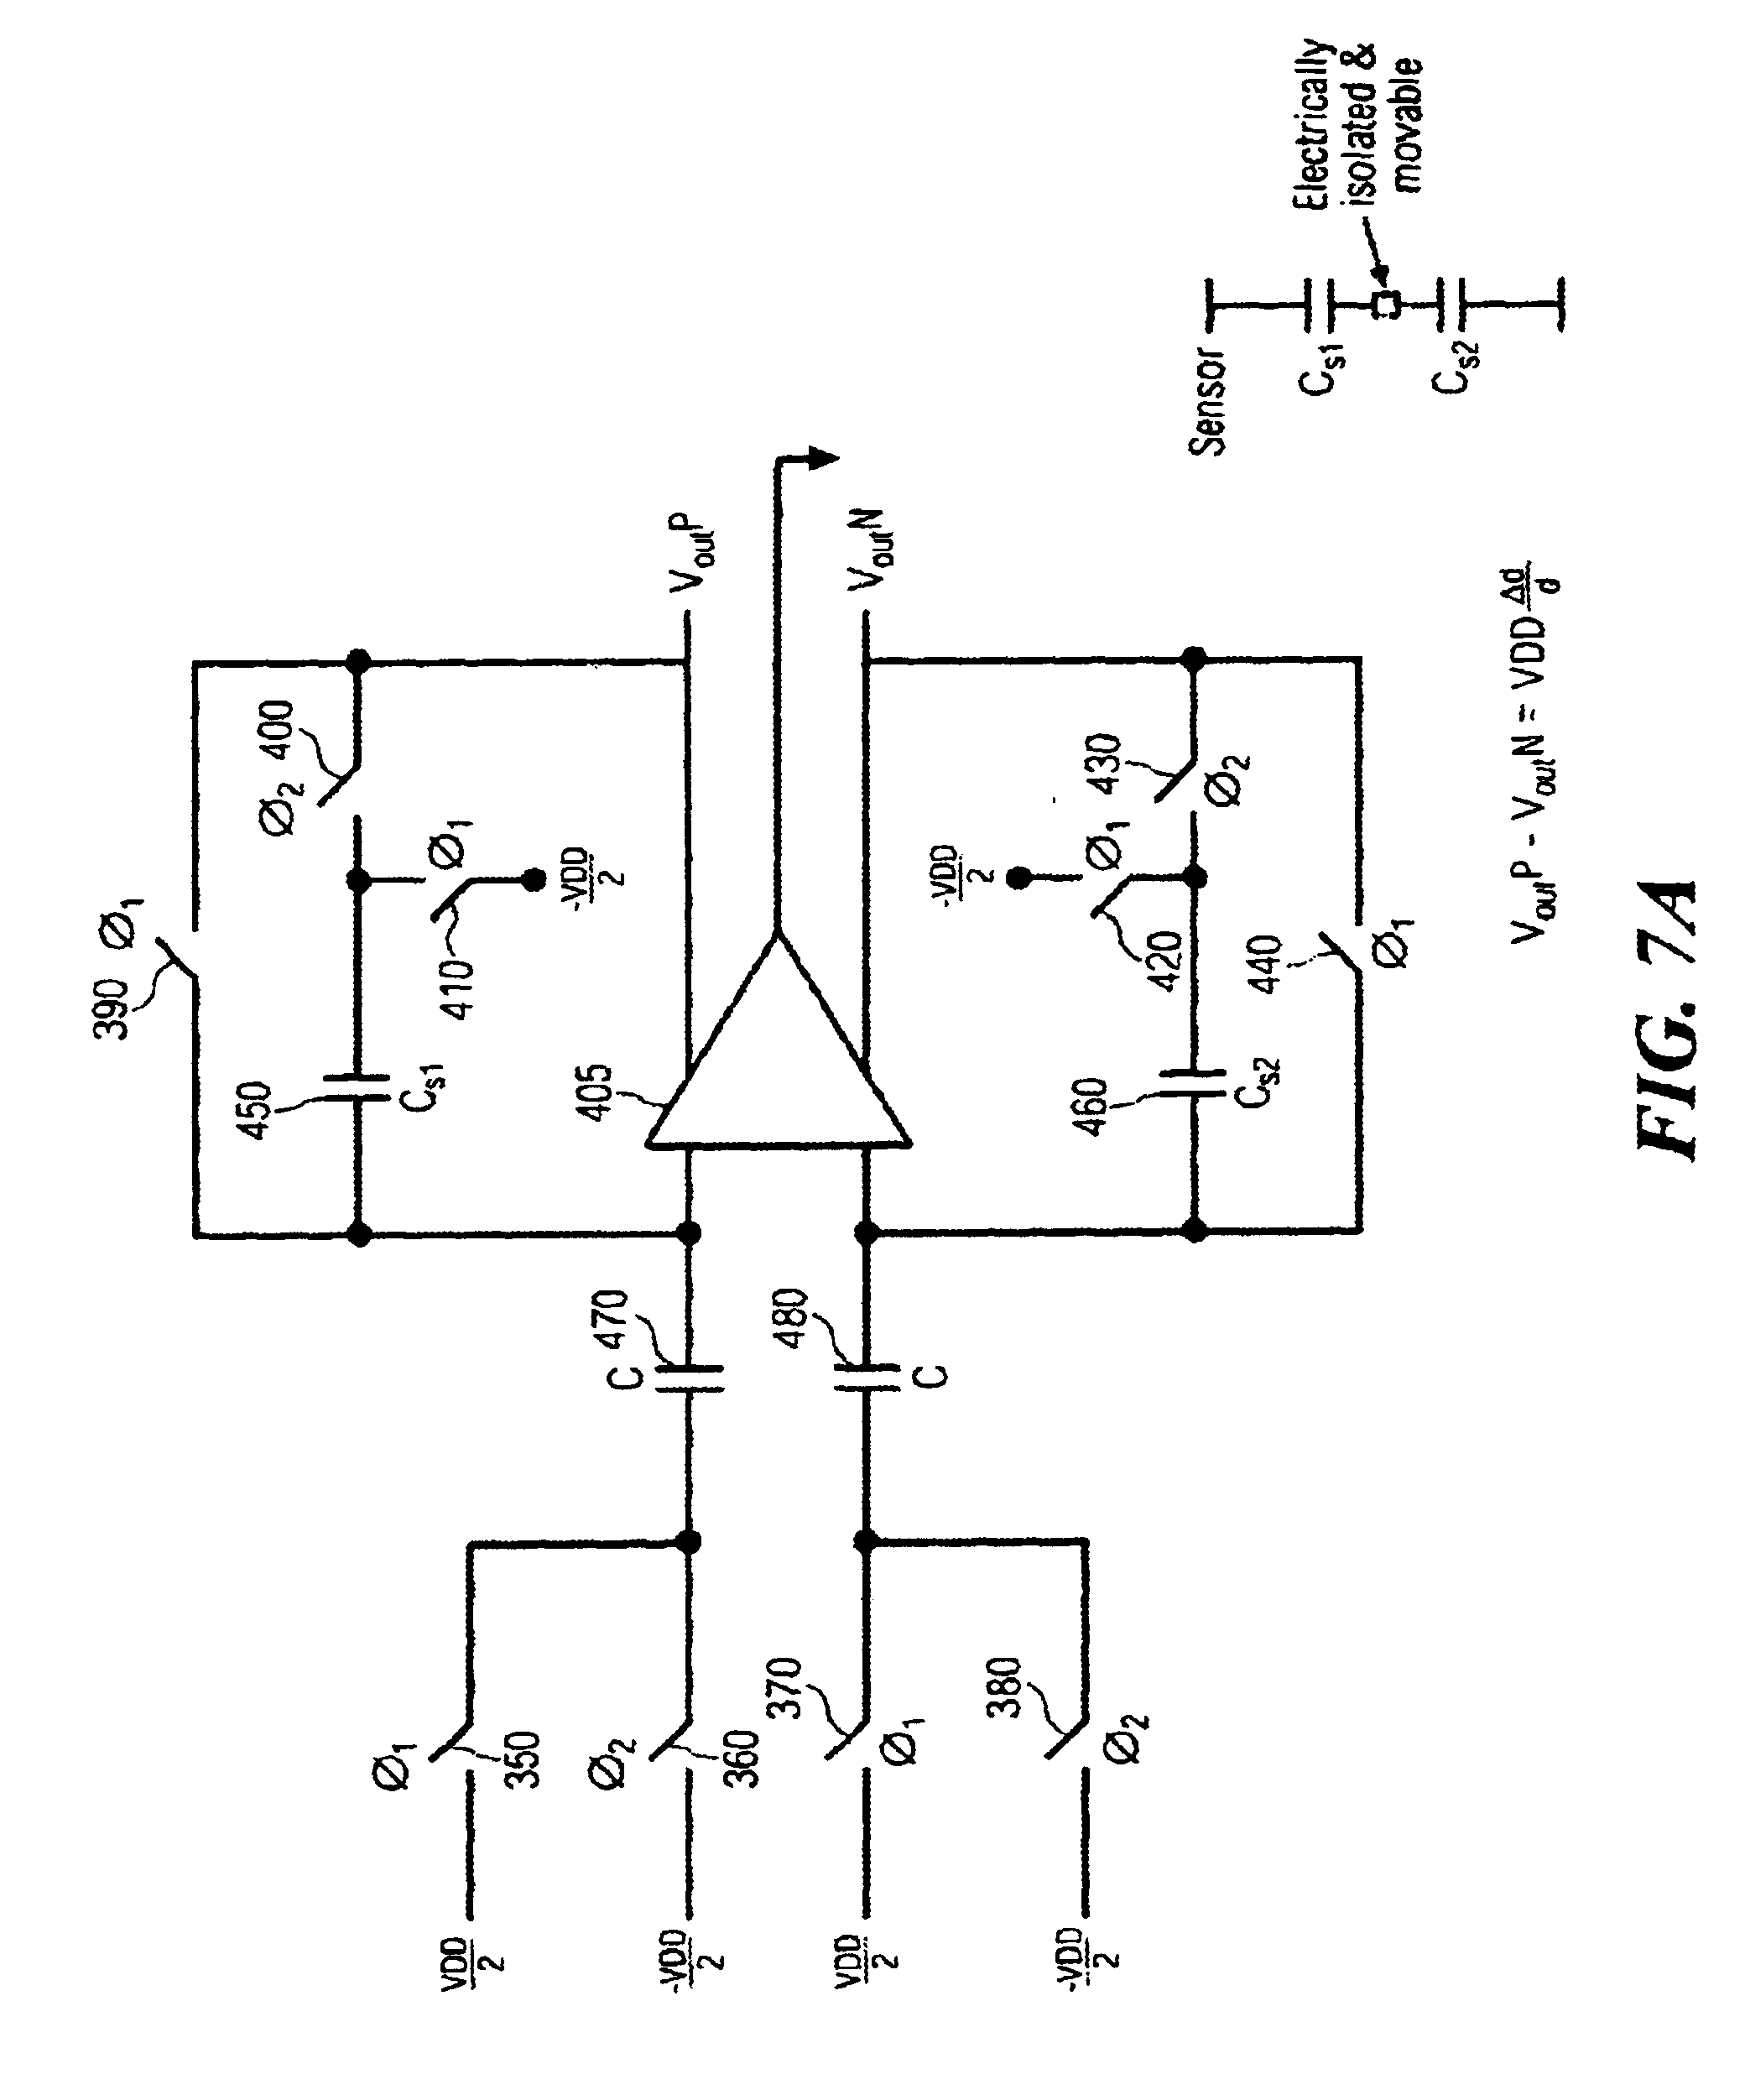 noninverting operational amplifier circuit with capacitor coupled